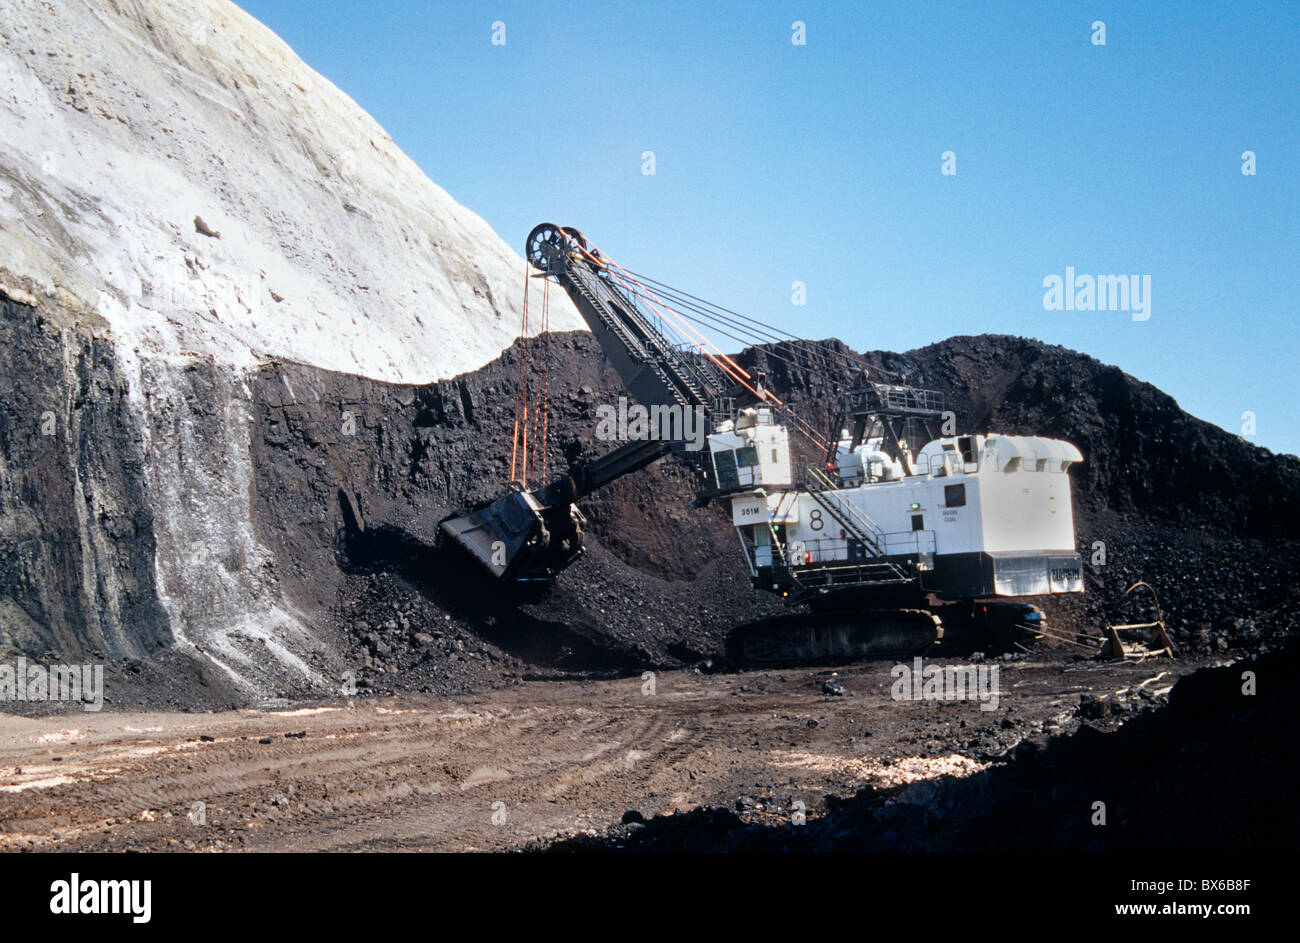 Coal, surface mine, P & H  Electric shovel excavating from coal seam, - Stock Image